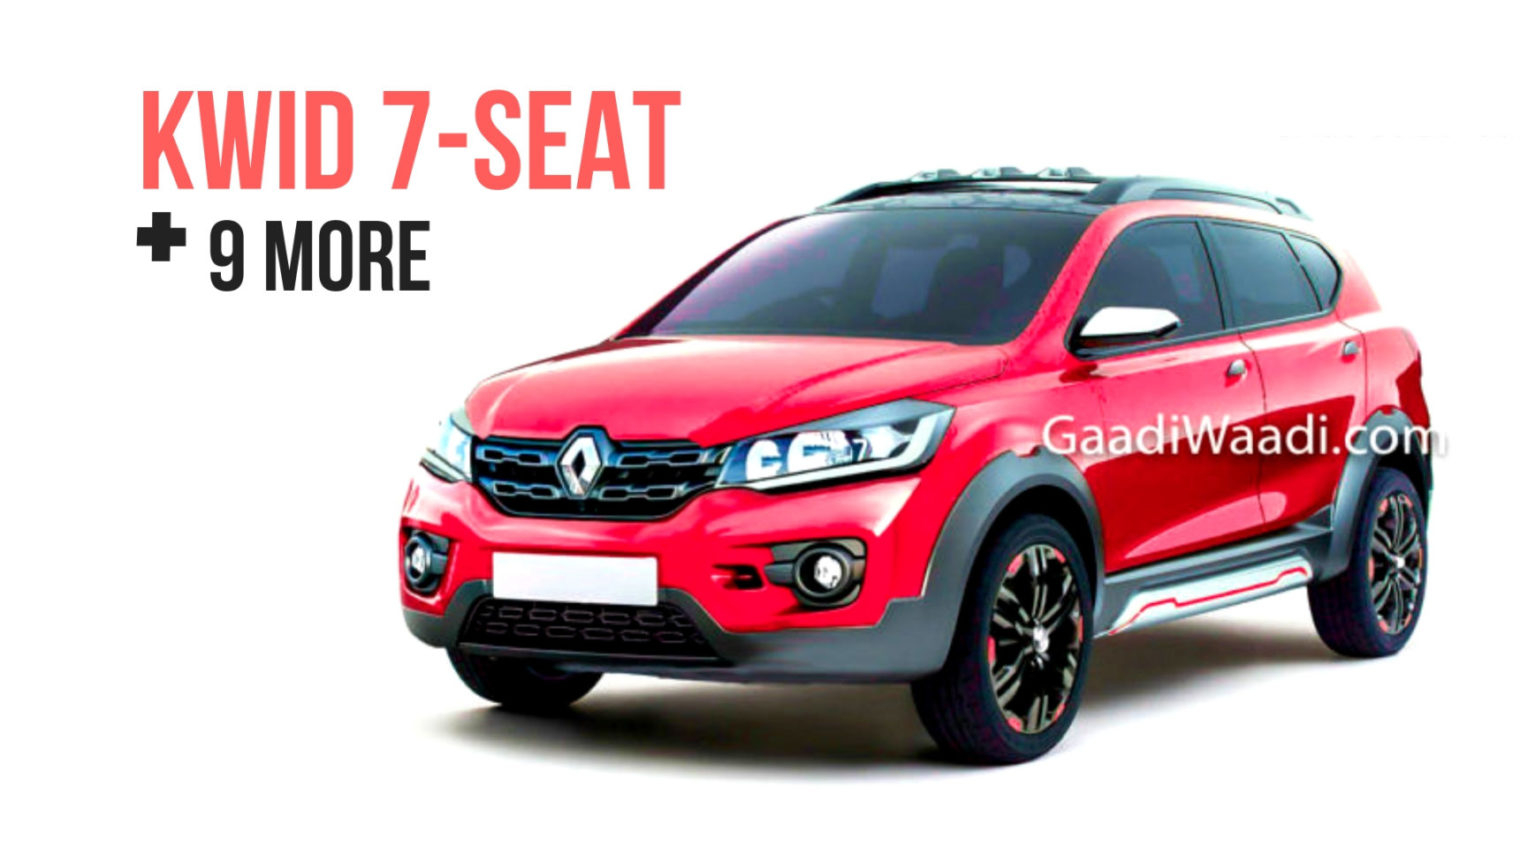 7 Seater Top 10 Upcoming 7 Seater Cars Mpv Suv In India